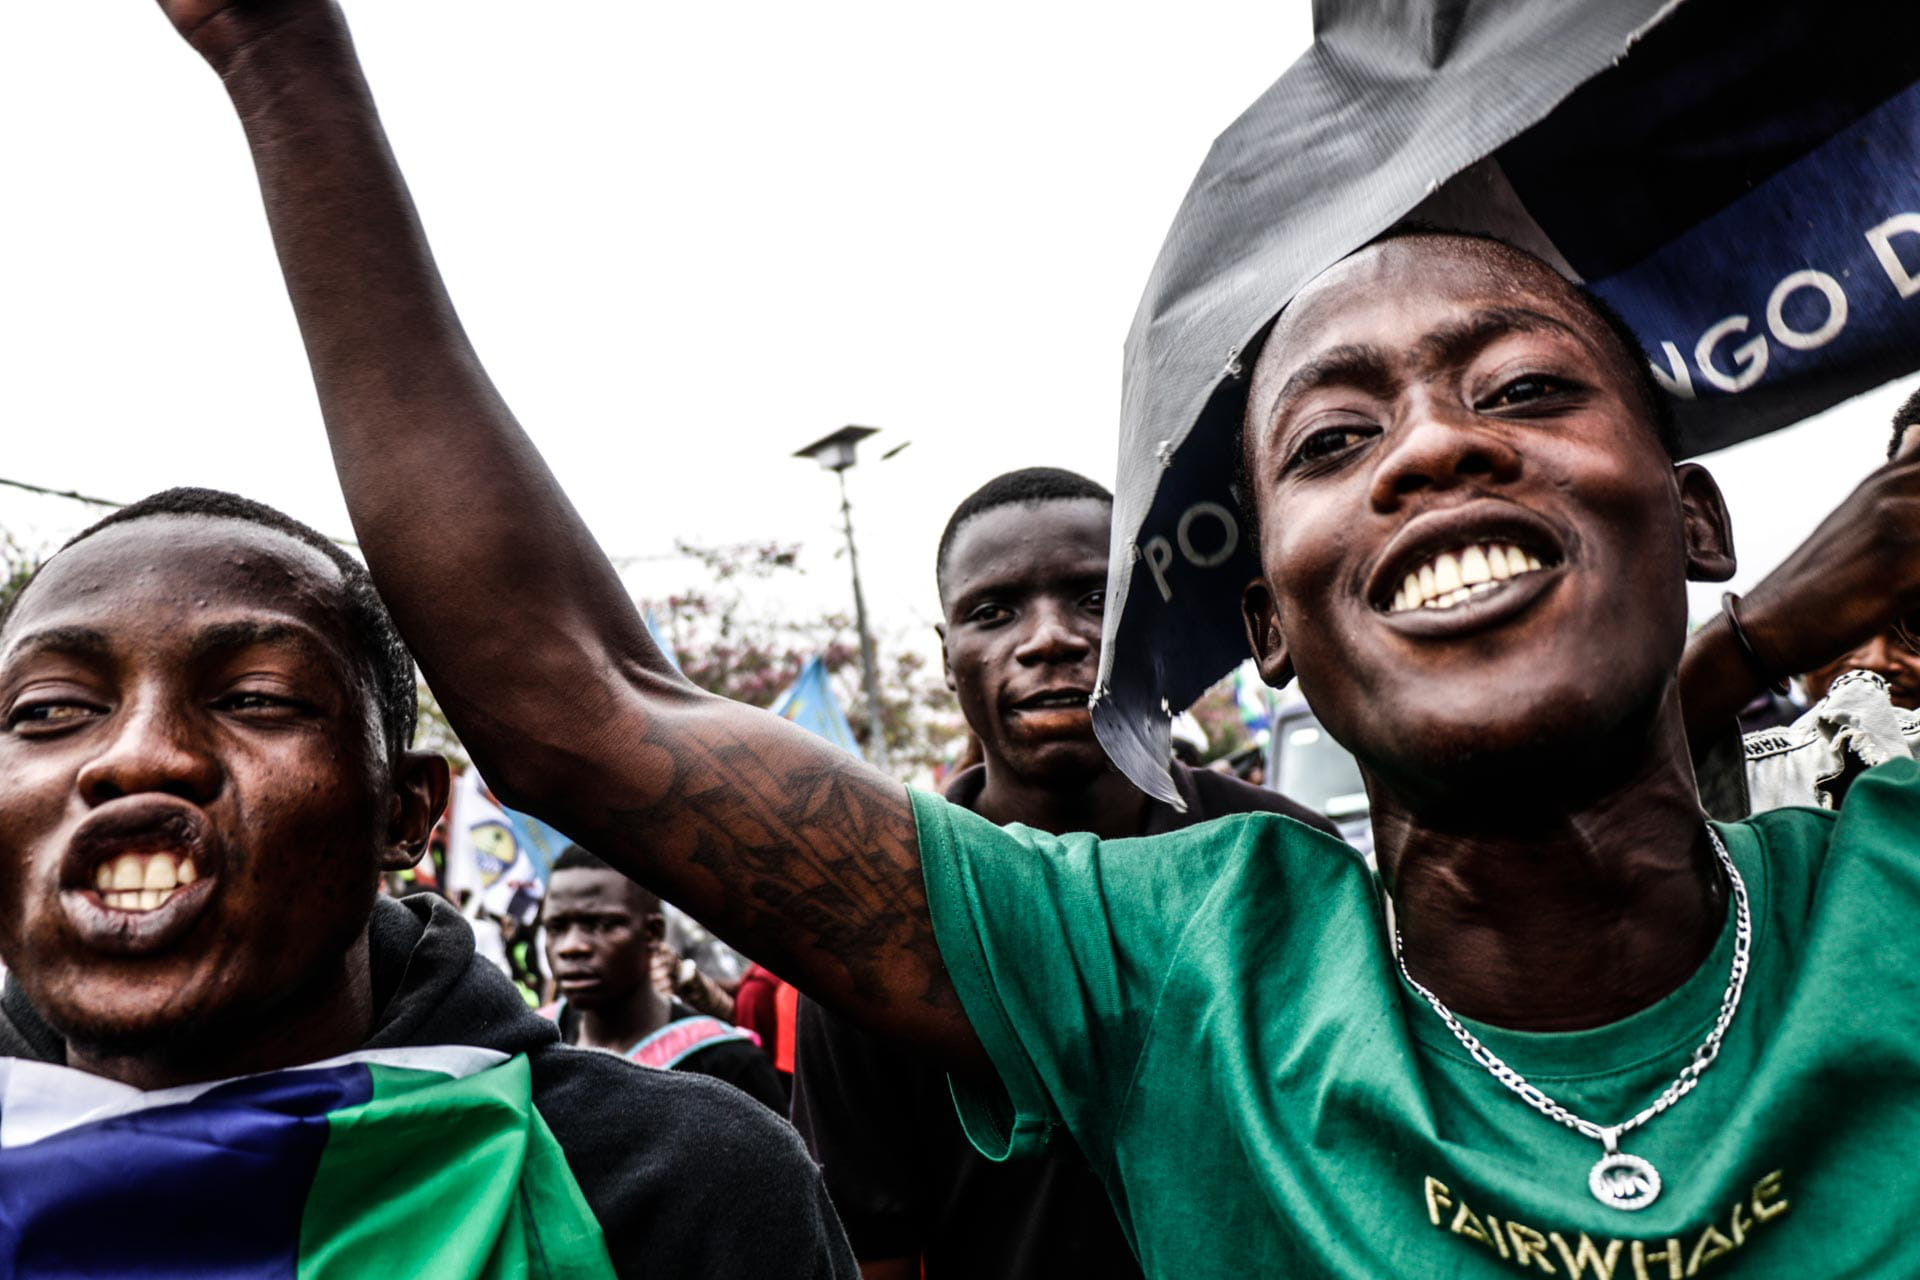 Kinshasa, DRC, August 23th 2020. Supporters of Lamuka opposition party leader Martin Fayulu cheer as he passes along the streets of Kinshasa when he returned to Congo this week after being stuck in the United States for five months due to coronavirus travel restrictions. © Justin Makangara for Fondation Carmignac